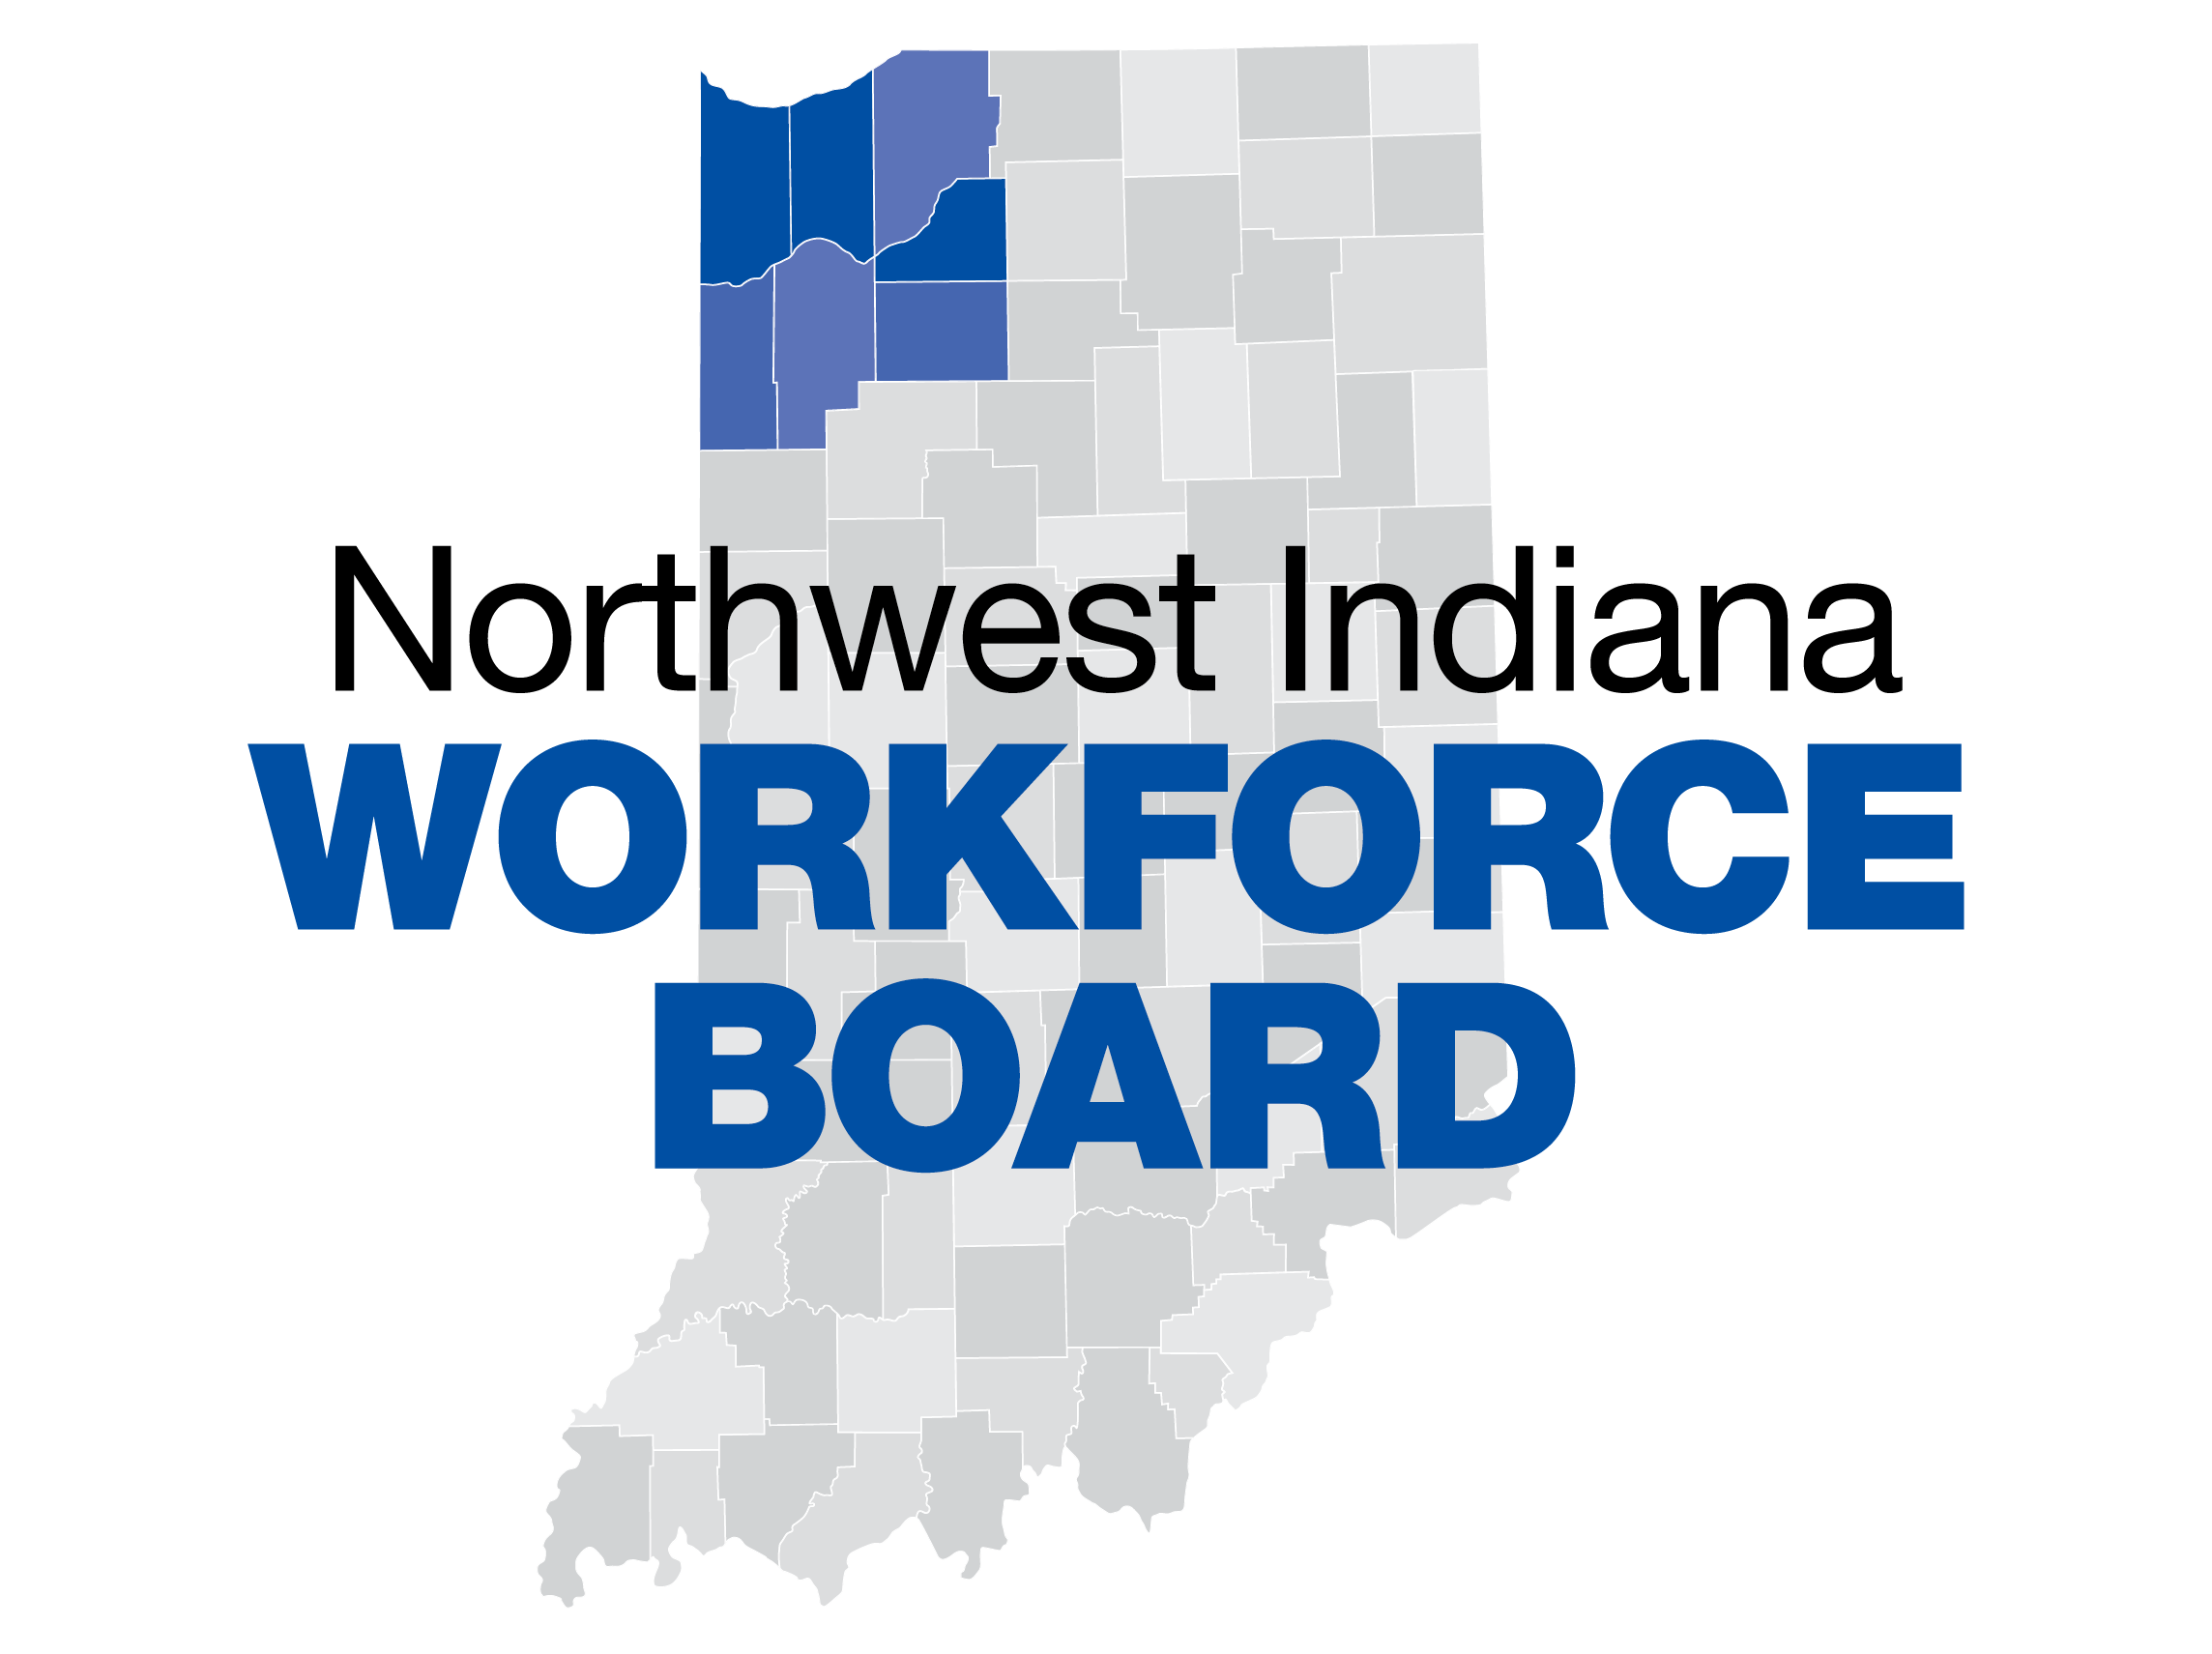 The Northwest Indiana Workforce Board